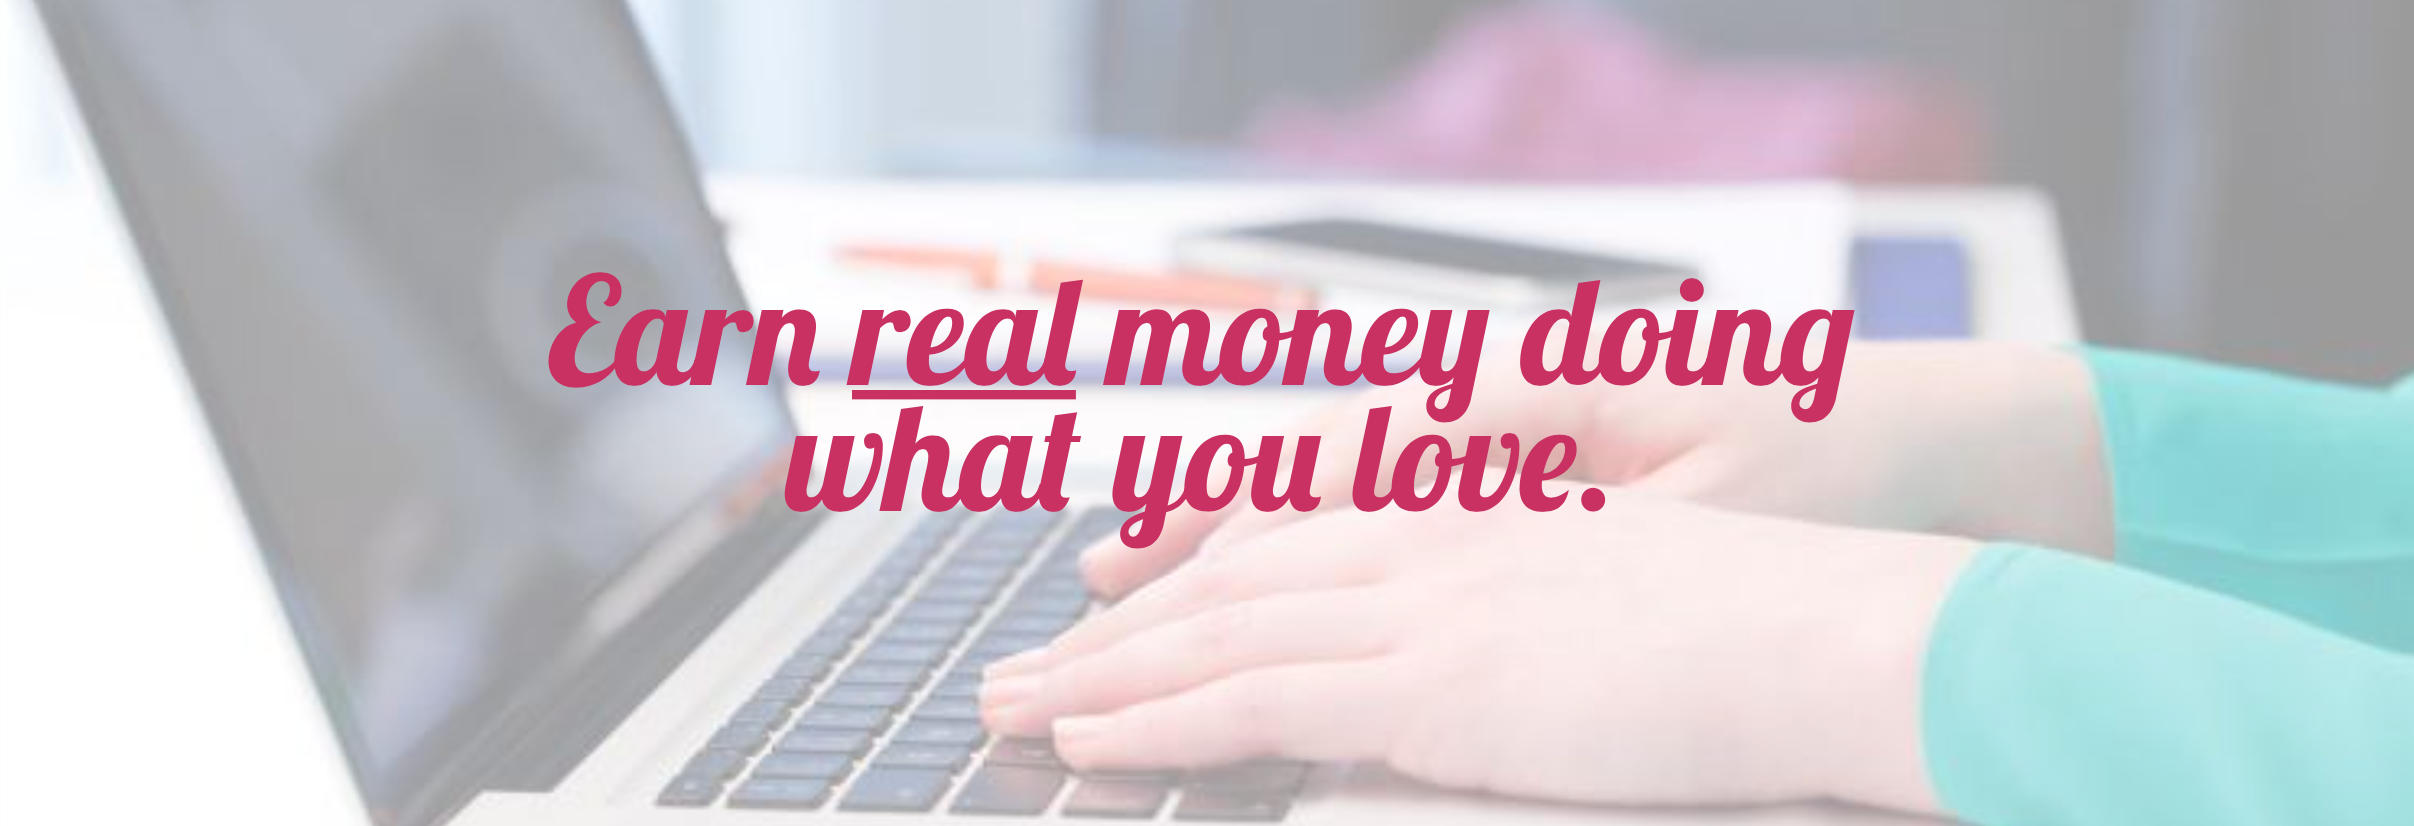 Earn real money blogging! Learn from the pros on how to make an actual income from a blog